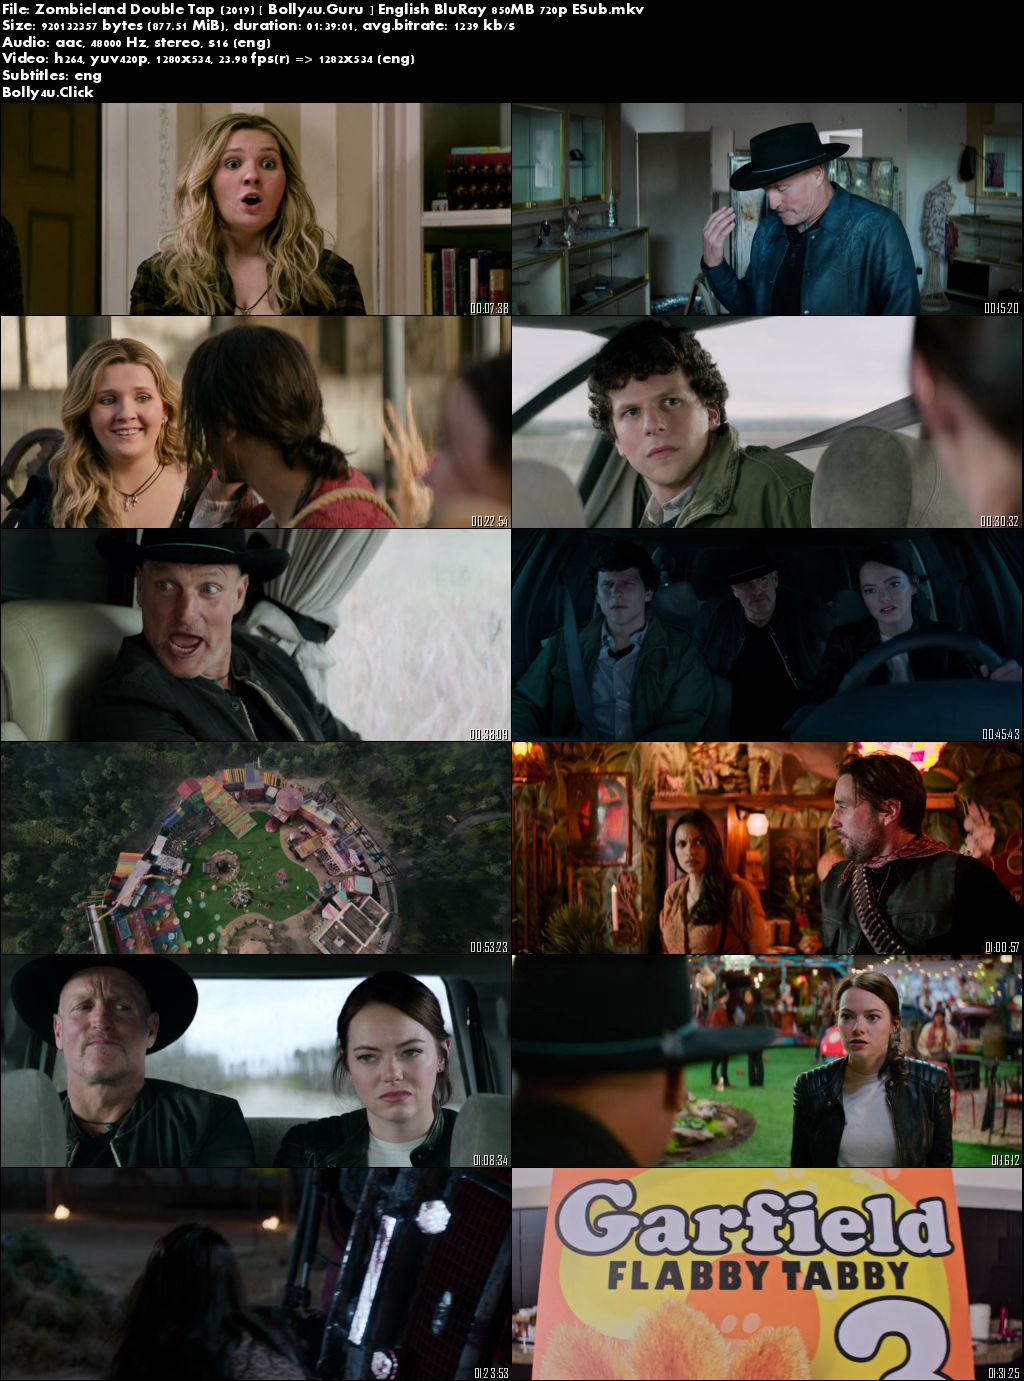 Zombieland Double Tap 2019 BRRip 850Mb English 720p ESub download